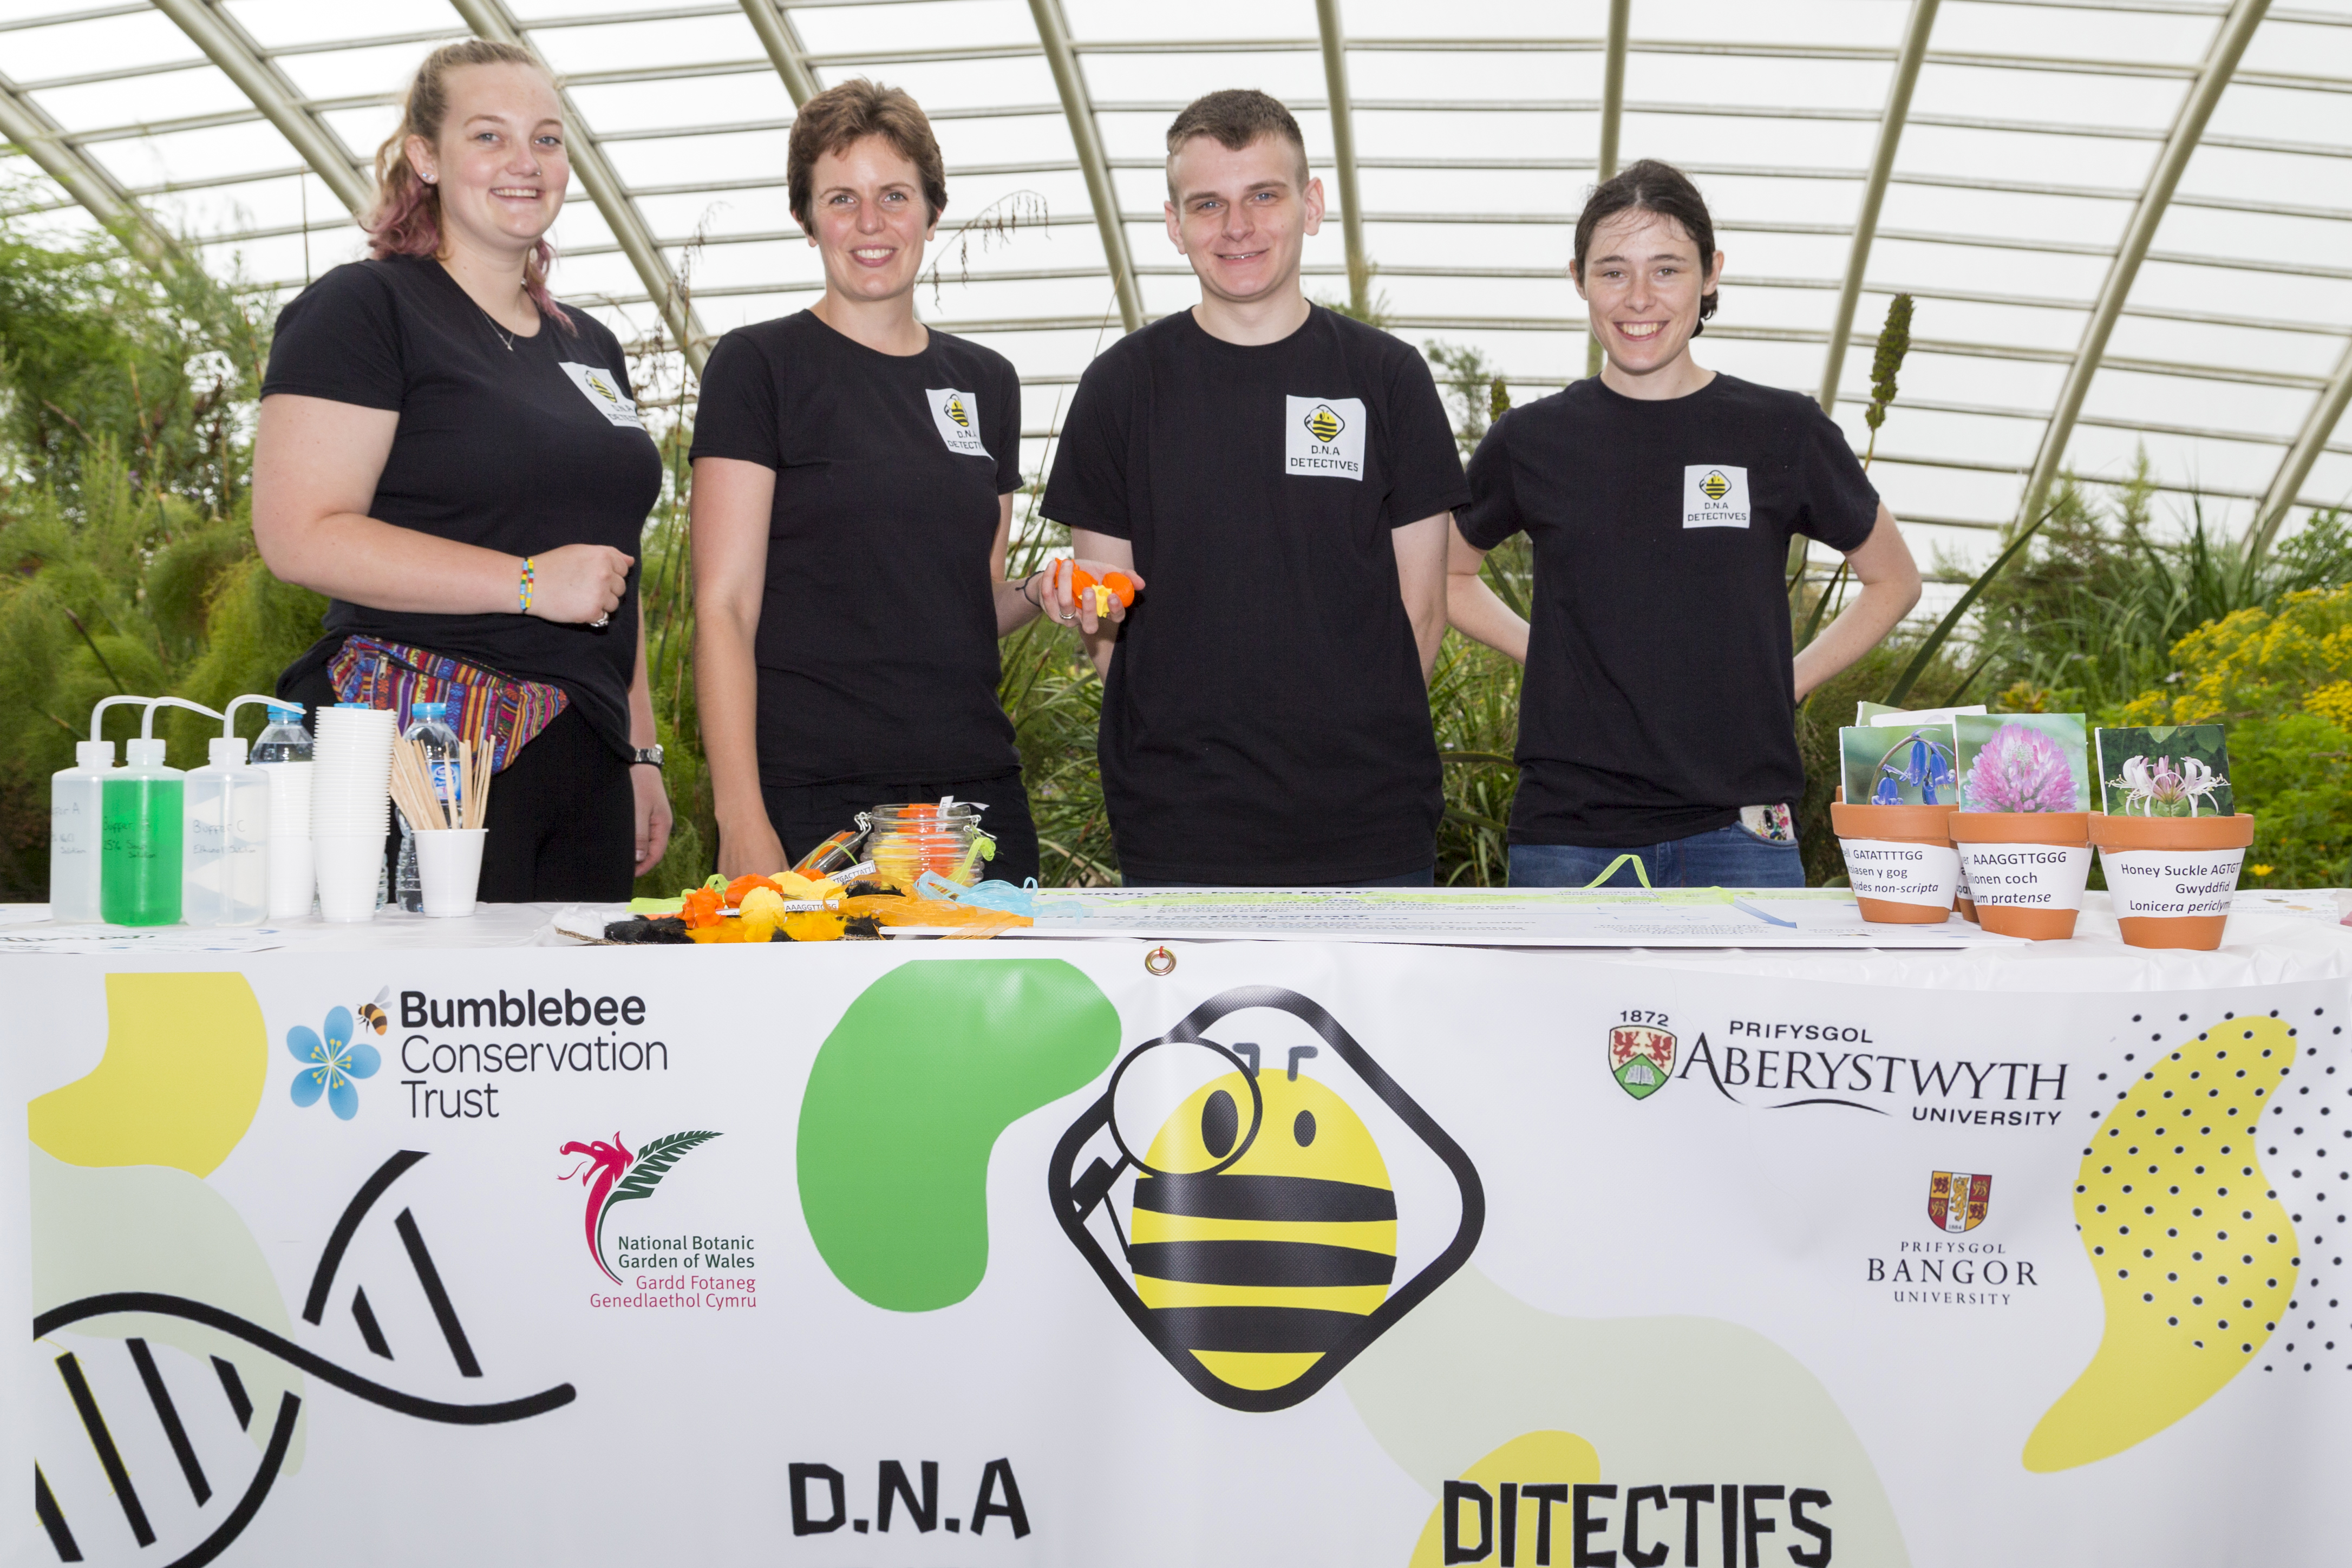 The team at the National Botanic Gardens of Wales photo by Tim Jones